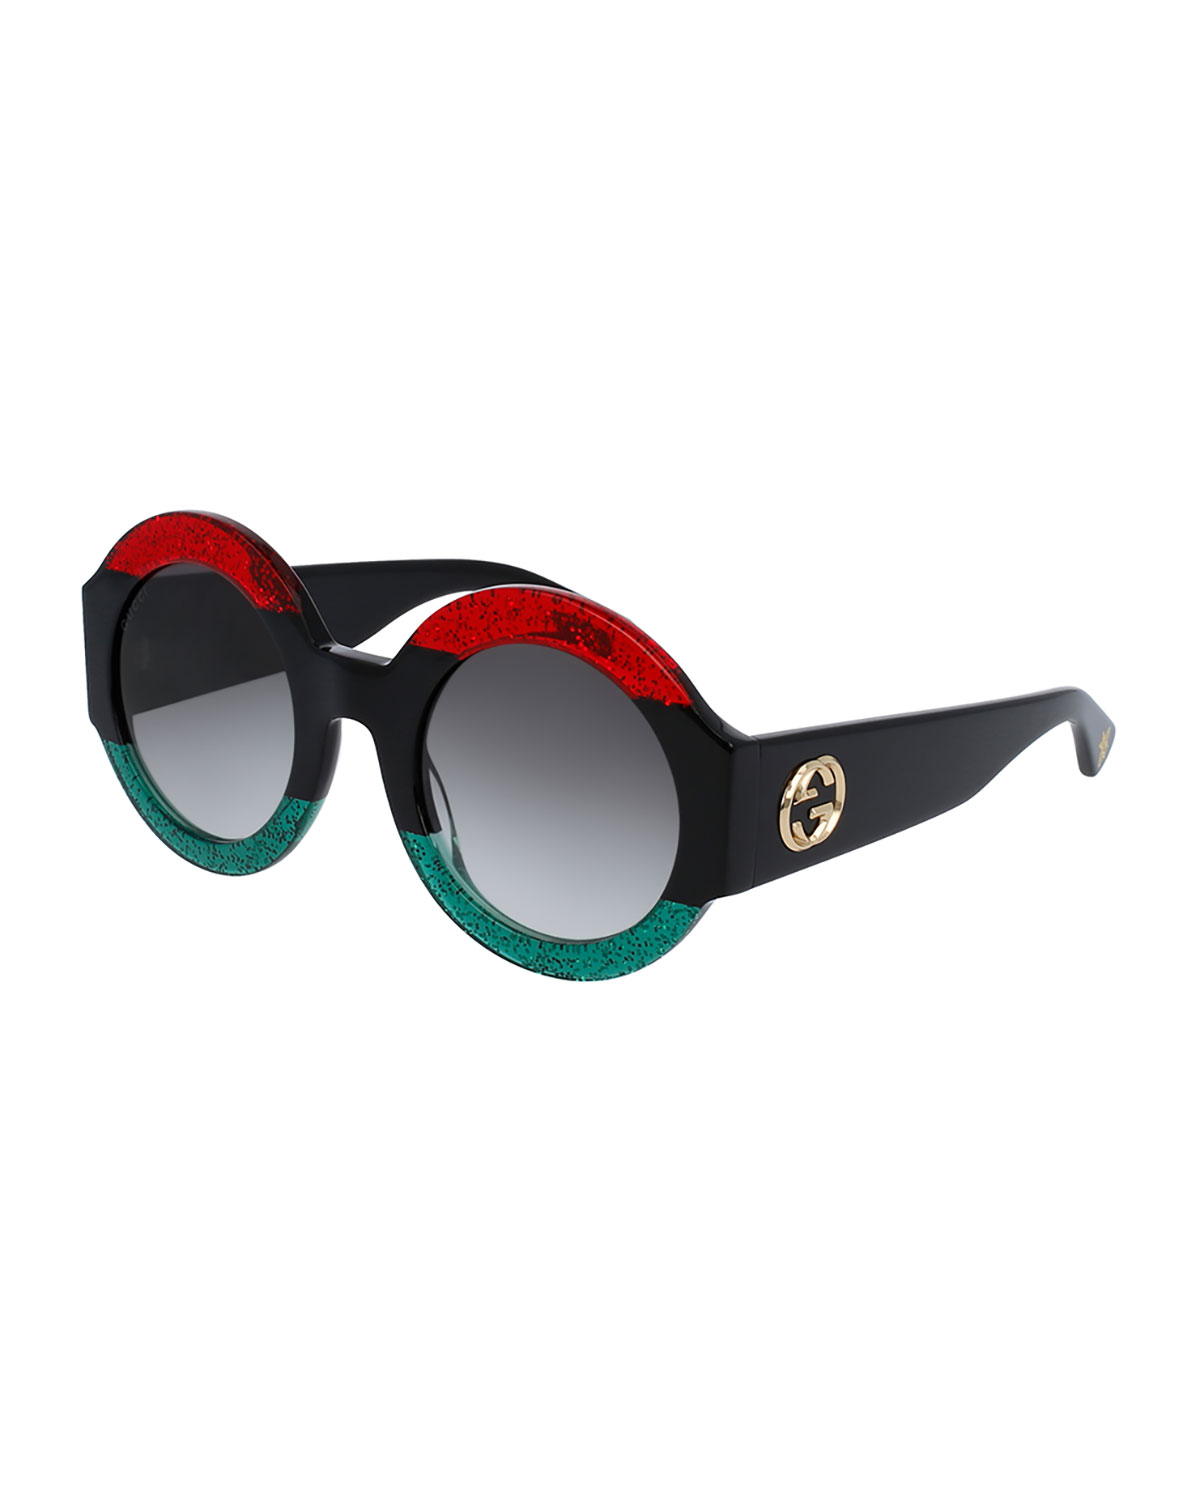 6e97ccded6 Gucci Glittered Oversized Round Sunglasses